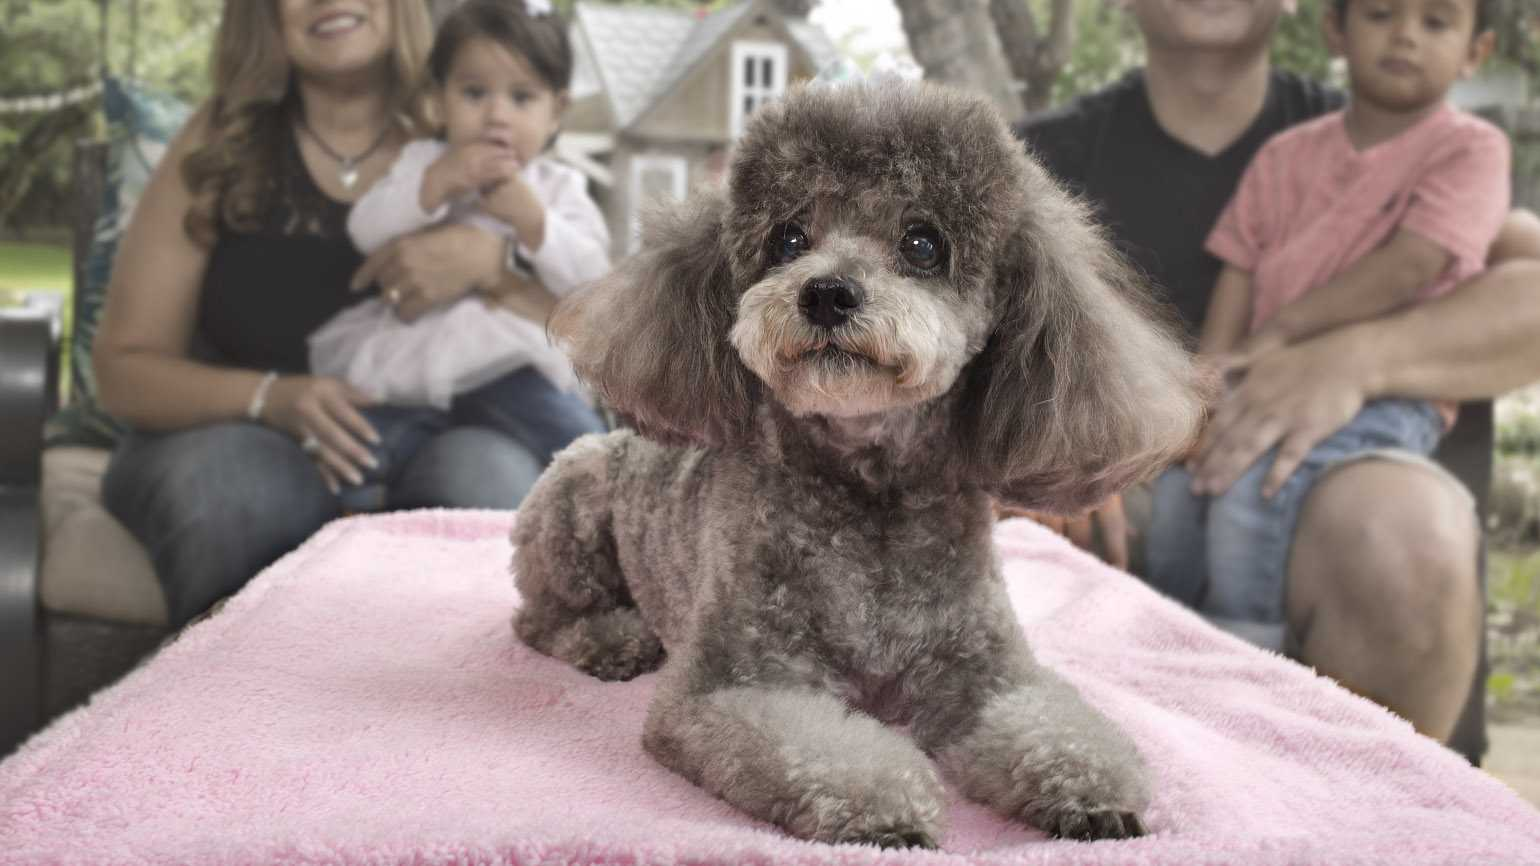 A close up of Teddy the toy poodle with Anna's family.